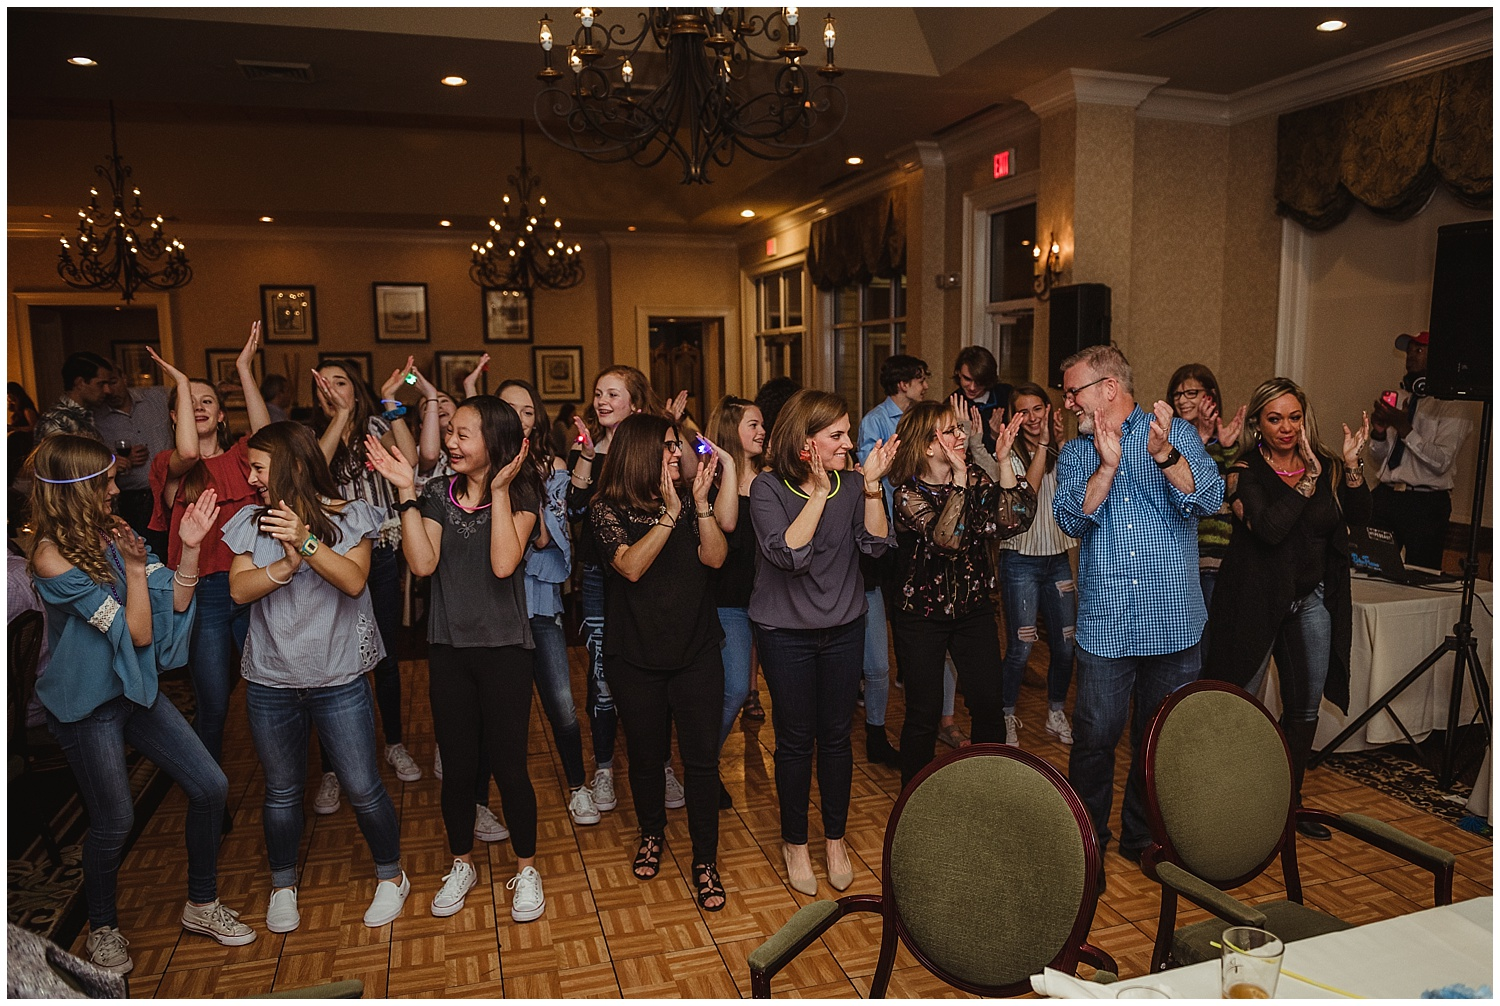 Guests dance and clap along during the mitzvah reception party with Rose Trail Images at the Brier Creek Country Club in Raleigh, NC.